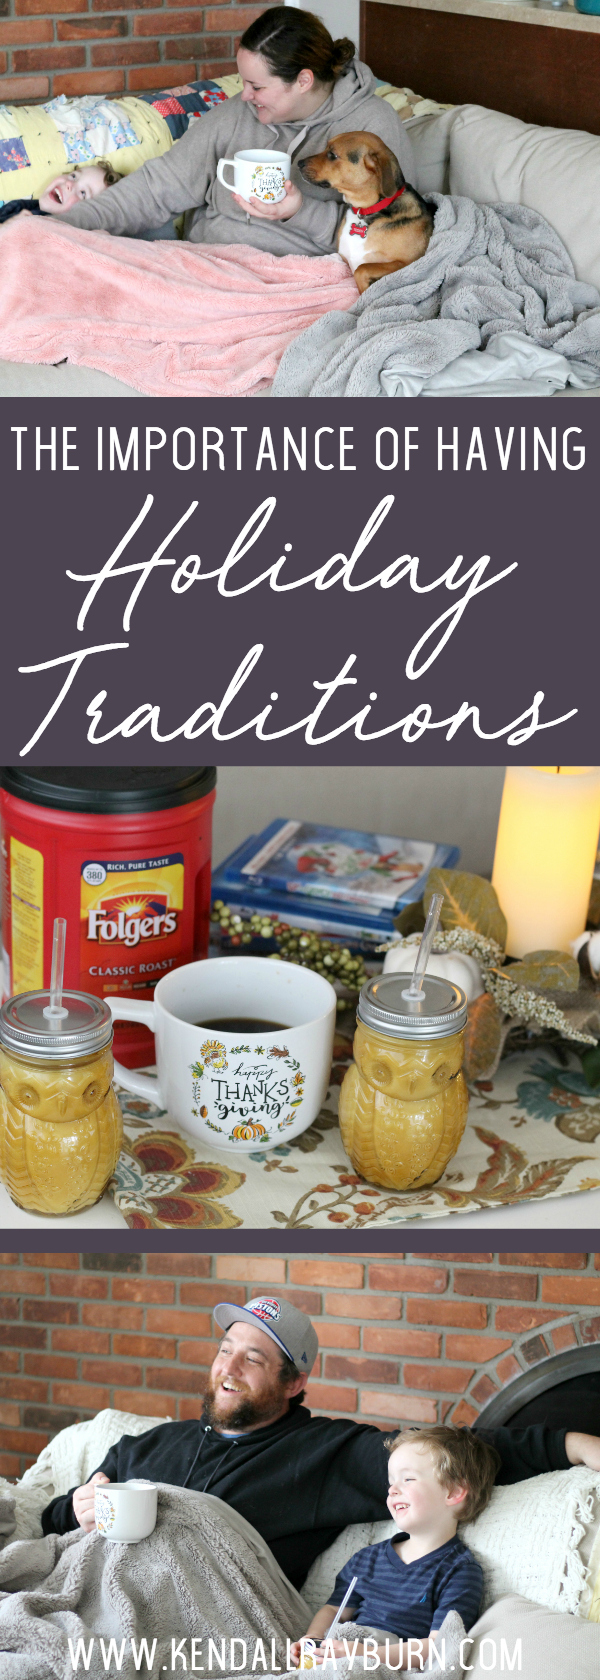 The Importance of Having Holiday Traditions